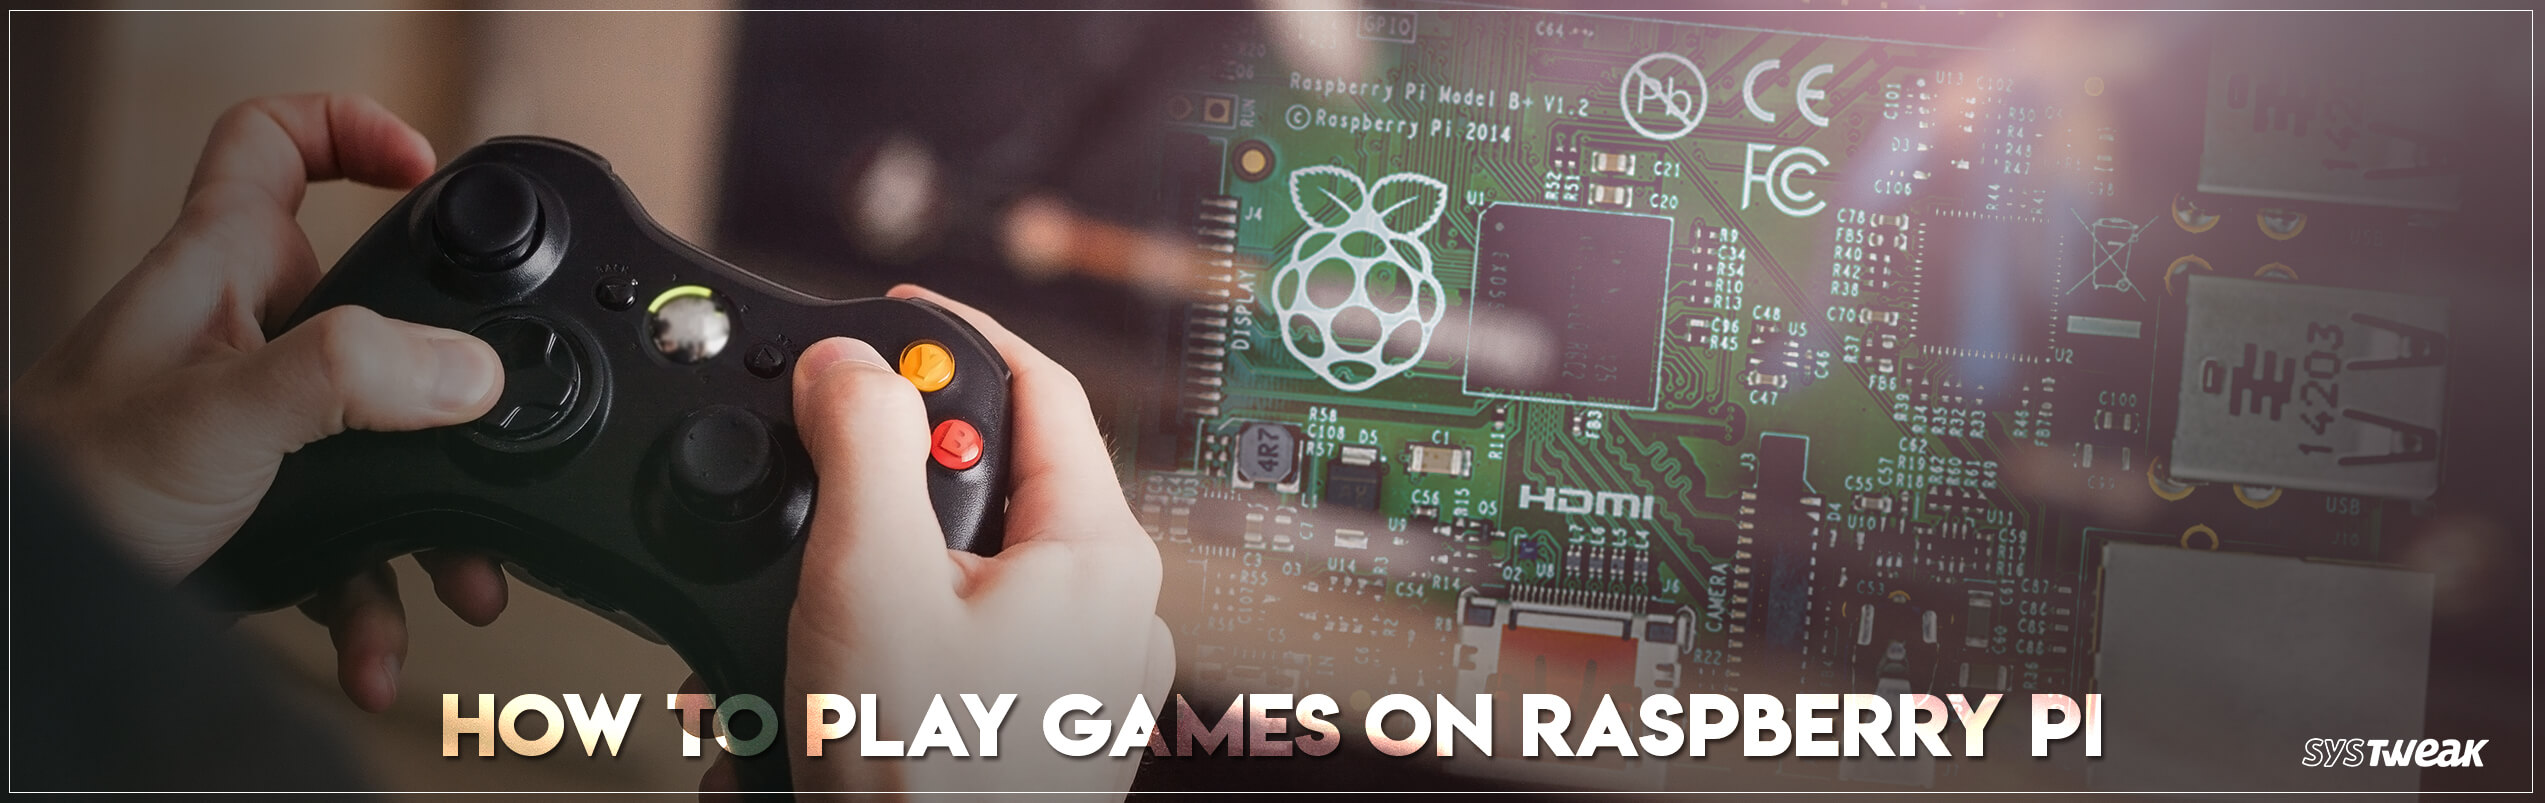 How To Convert Any Video Games Into A Raspberry Pi Video Game?